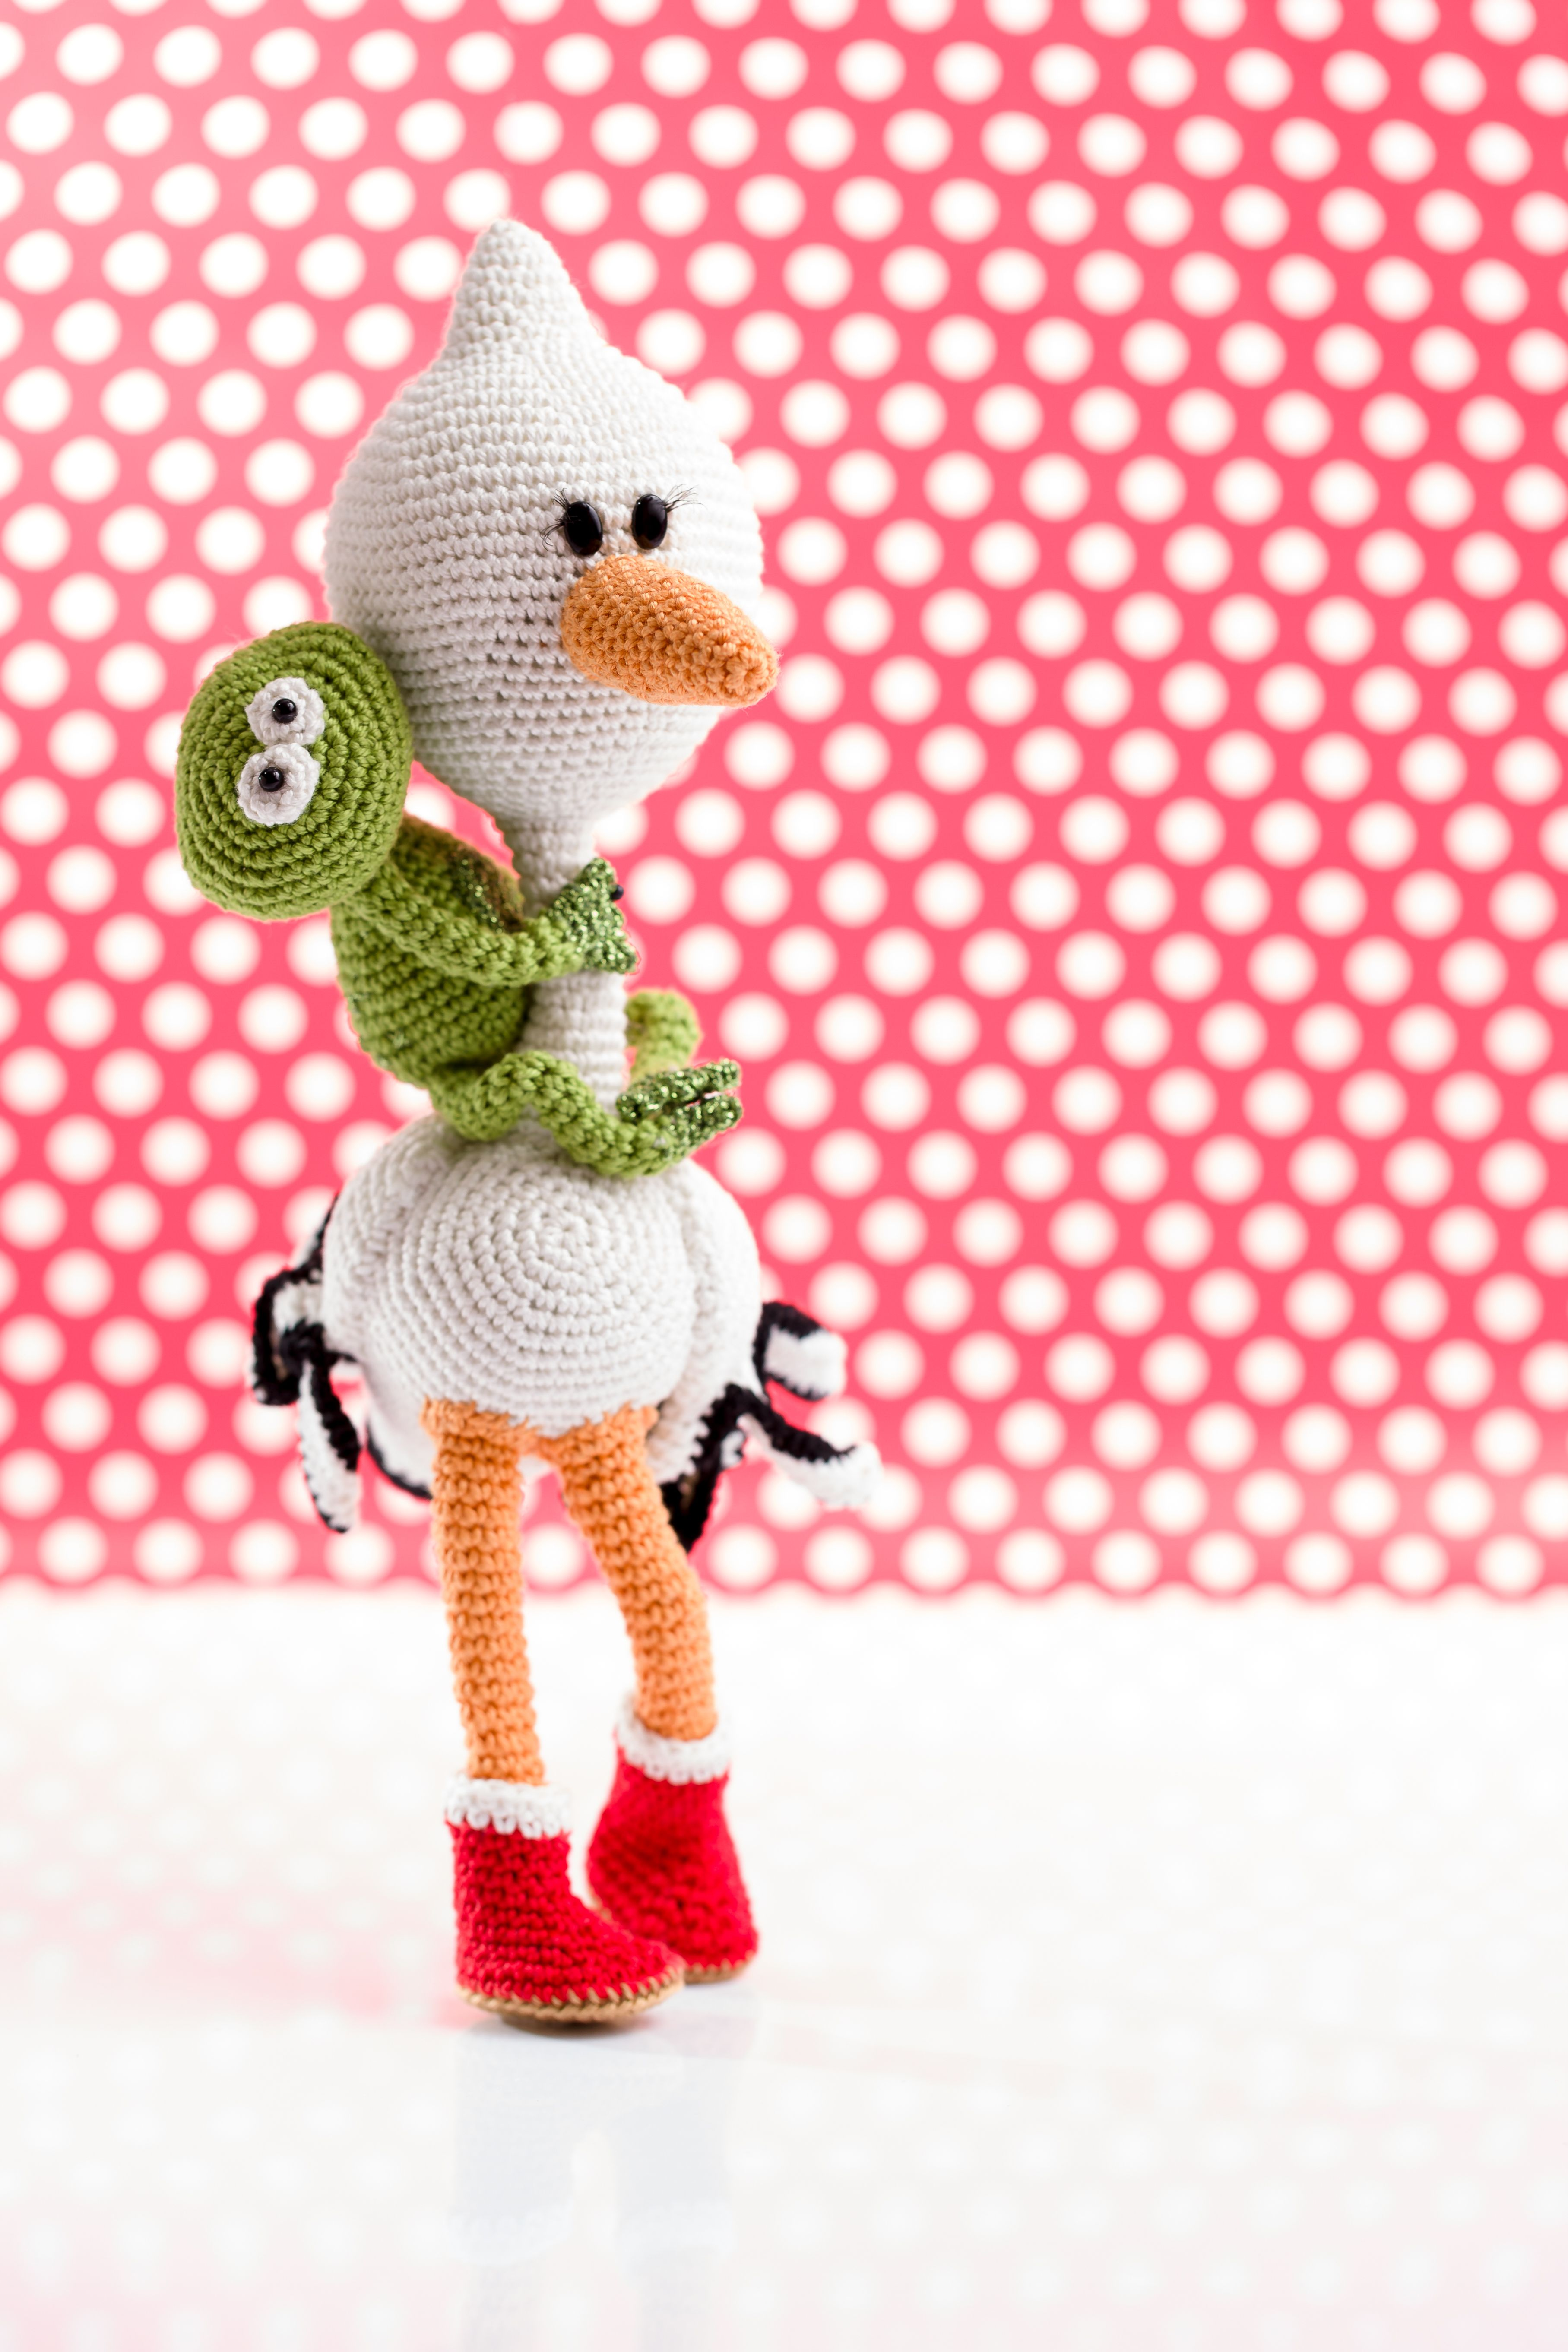 Woolytoons Tristan and Isolde from amigurumi\'s in love | Woolytoons ...